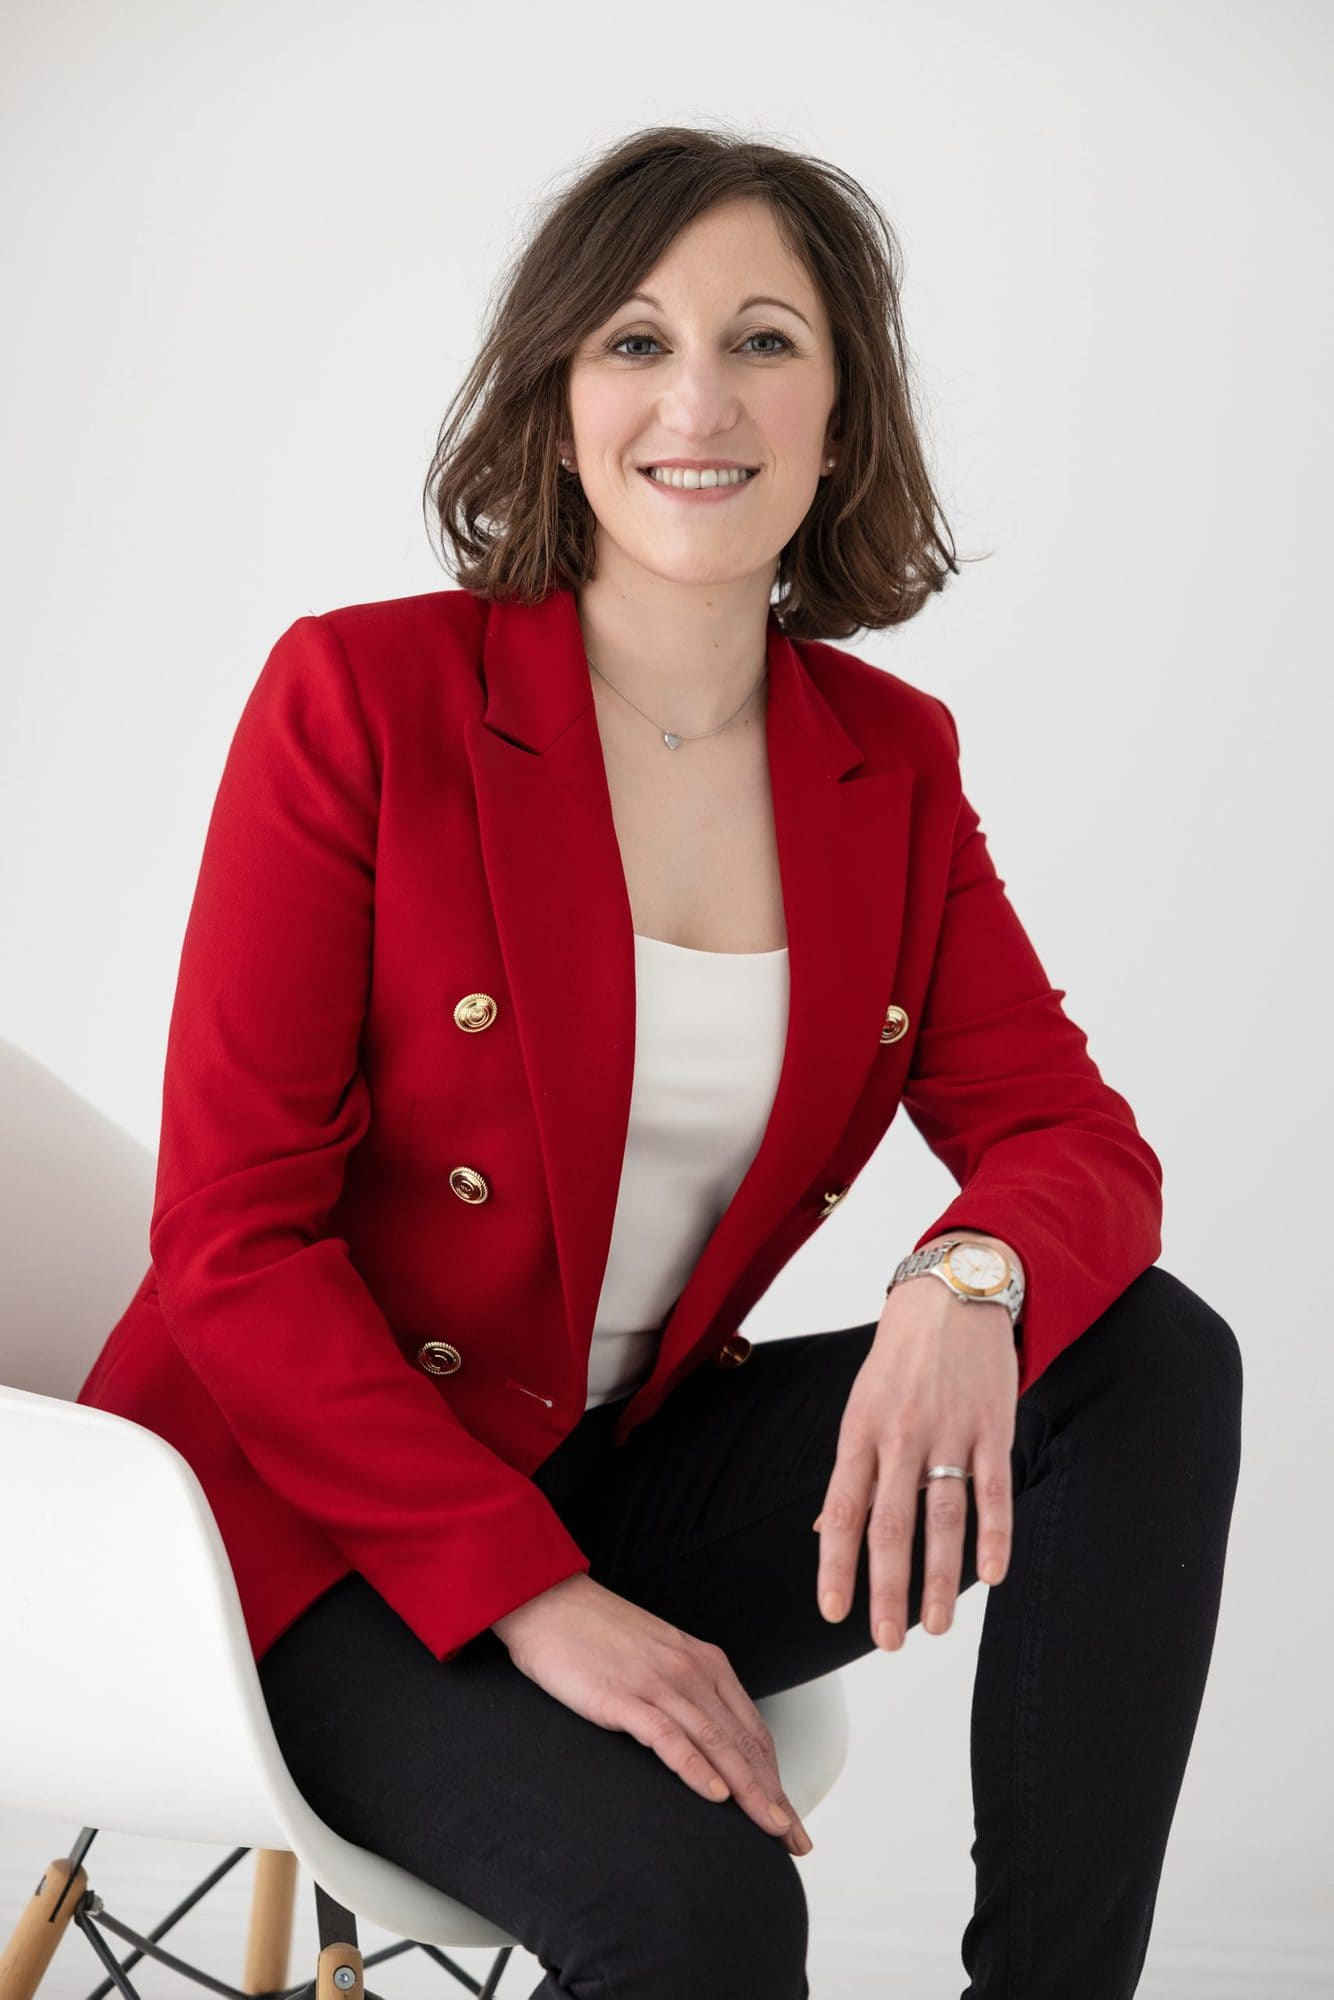 Woman in red jacket sits on a white chair during her Personal Branding Photo shoot in Suffolk